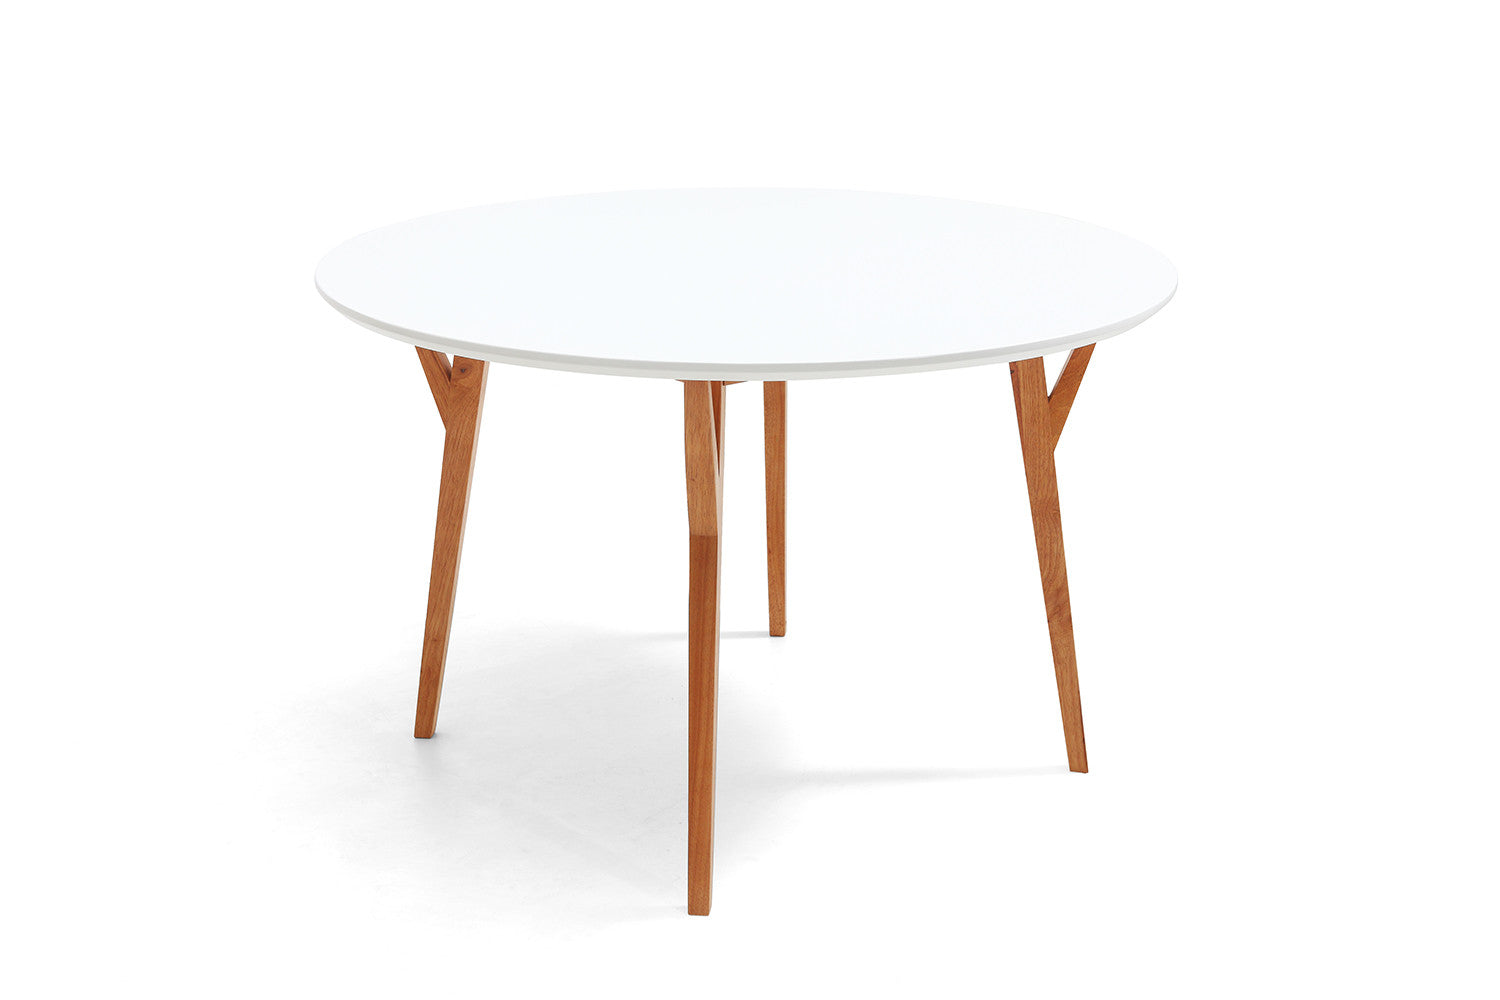 Table de salle manger ronde design scandinave moesa for Table bois salle a manger